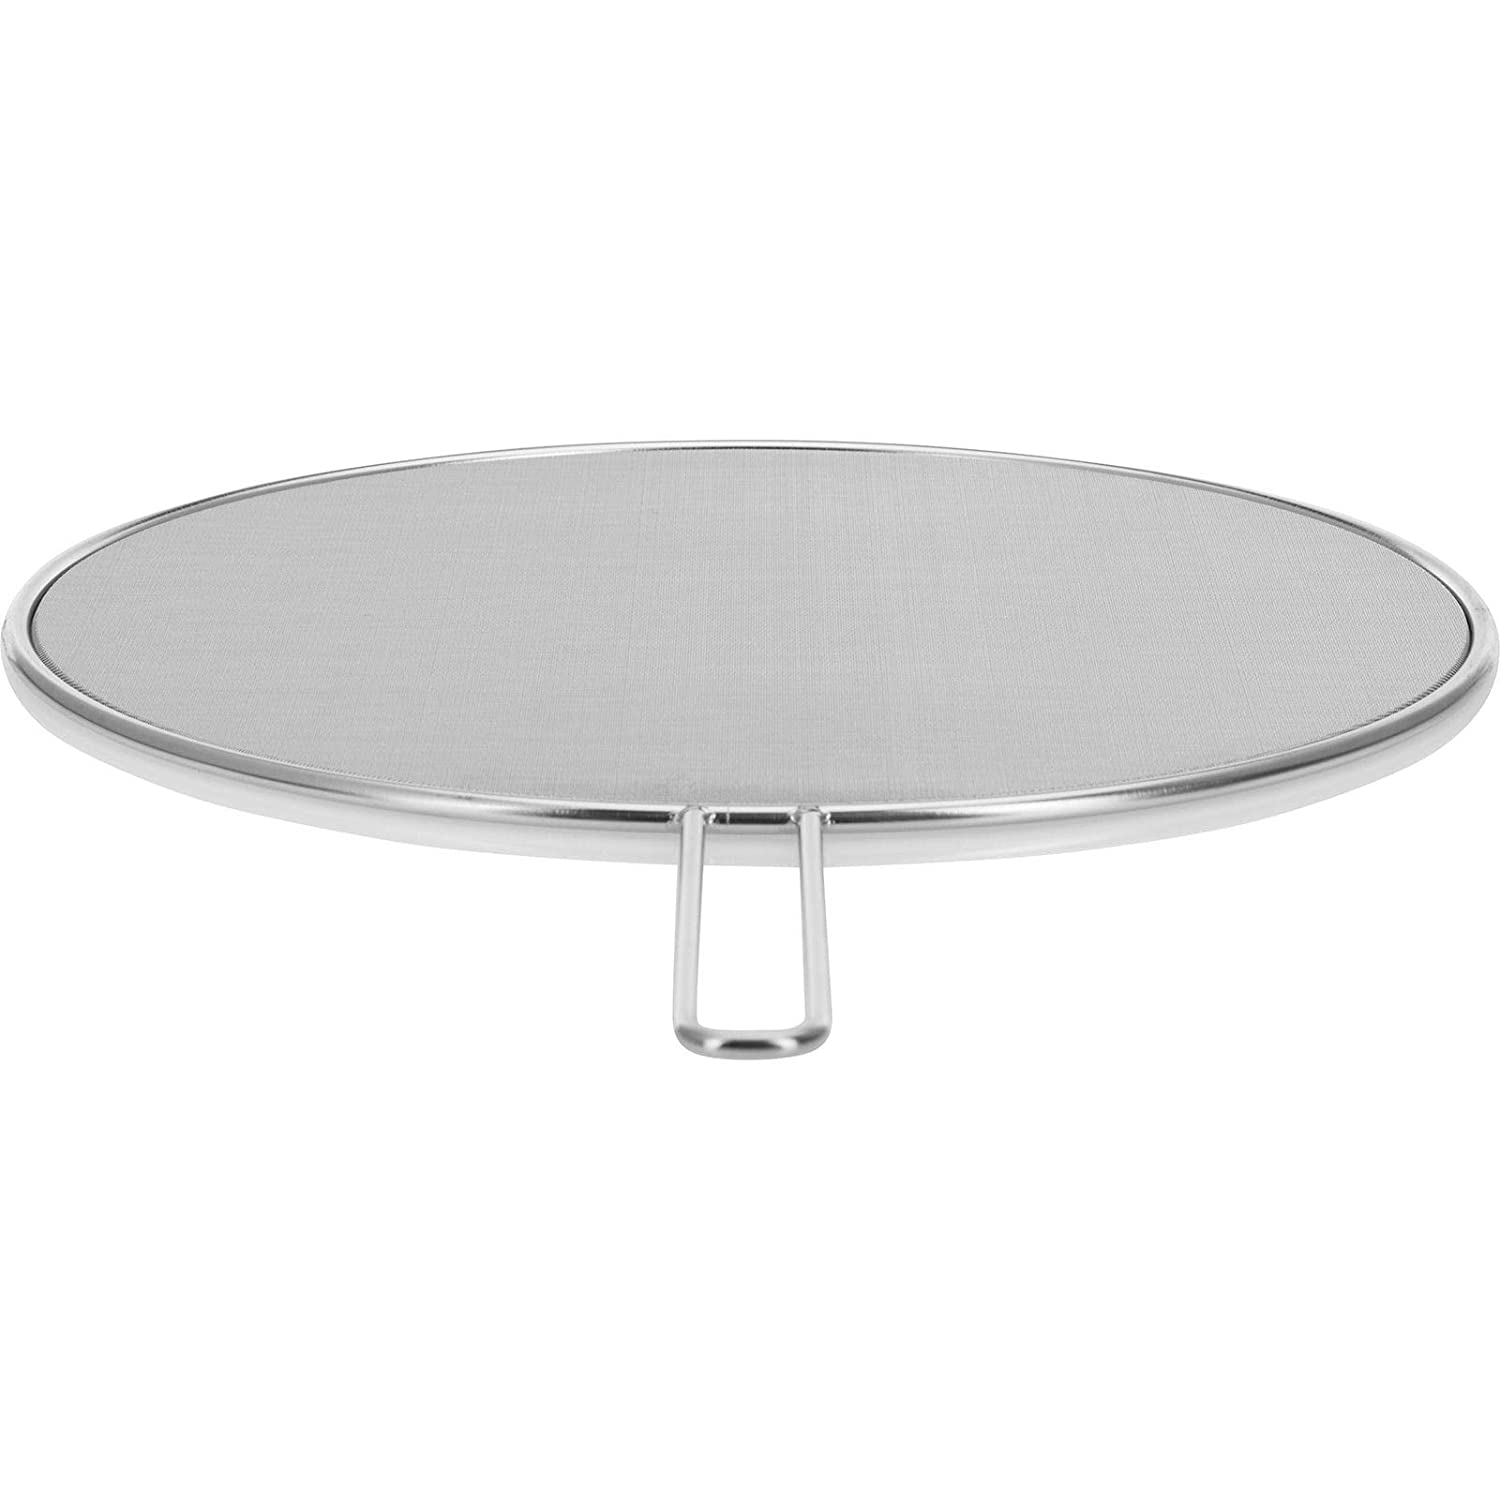 Westmark Splatter Screen Picante Stainless Steel Silver 45.5 x 30 x 0.7 cm